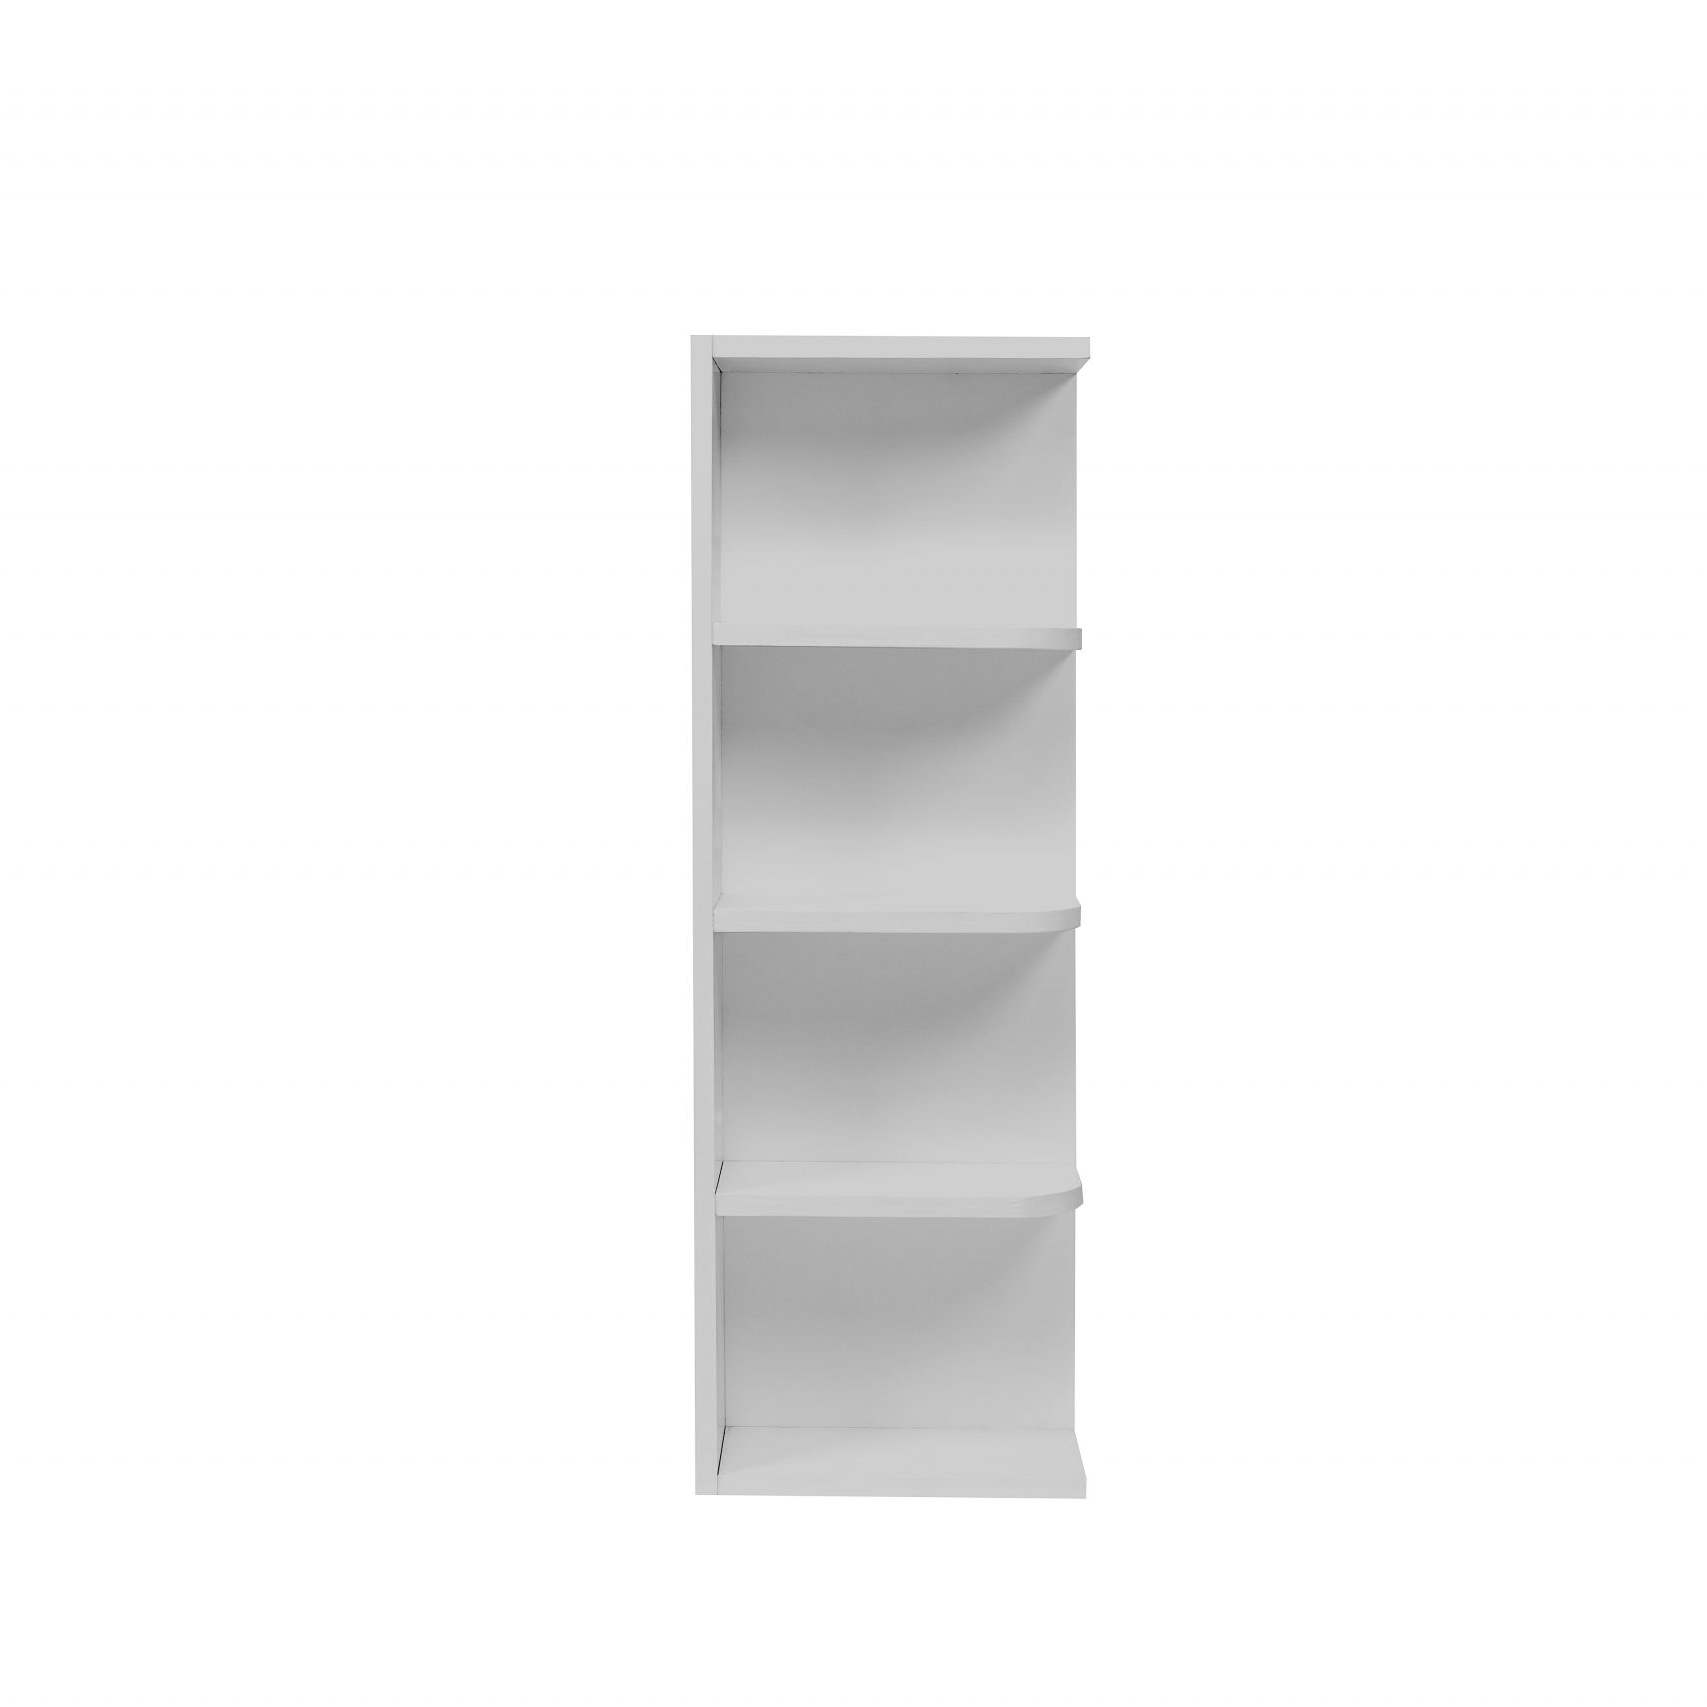 Gray Shaker Cabinetry OES06